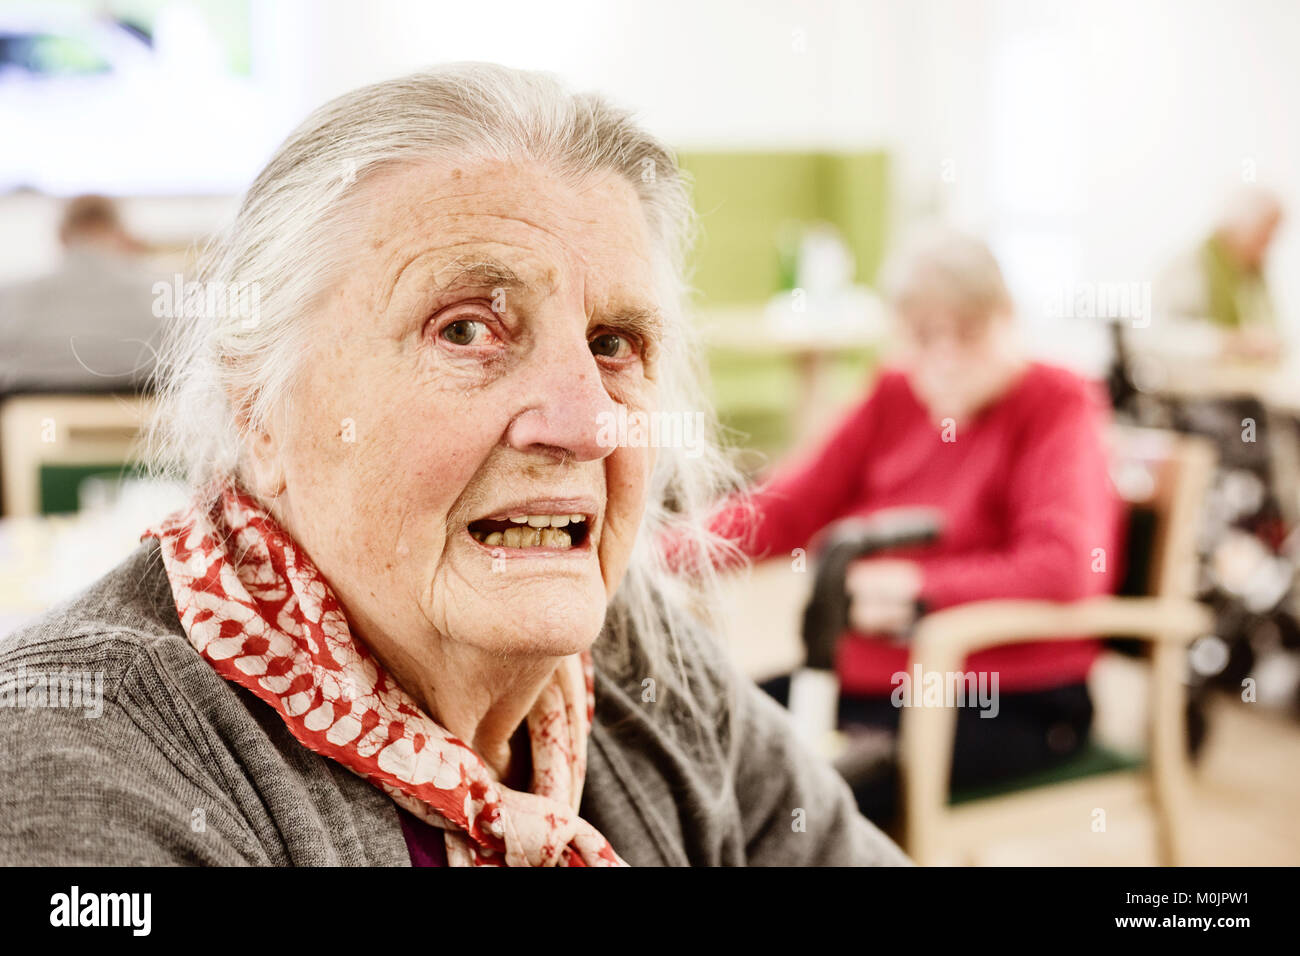 Demented senior citizen, portrait, looking questioningly, in a retirement home, Germany - Stock Image